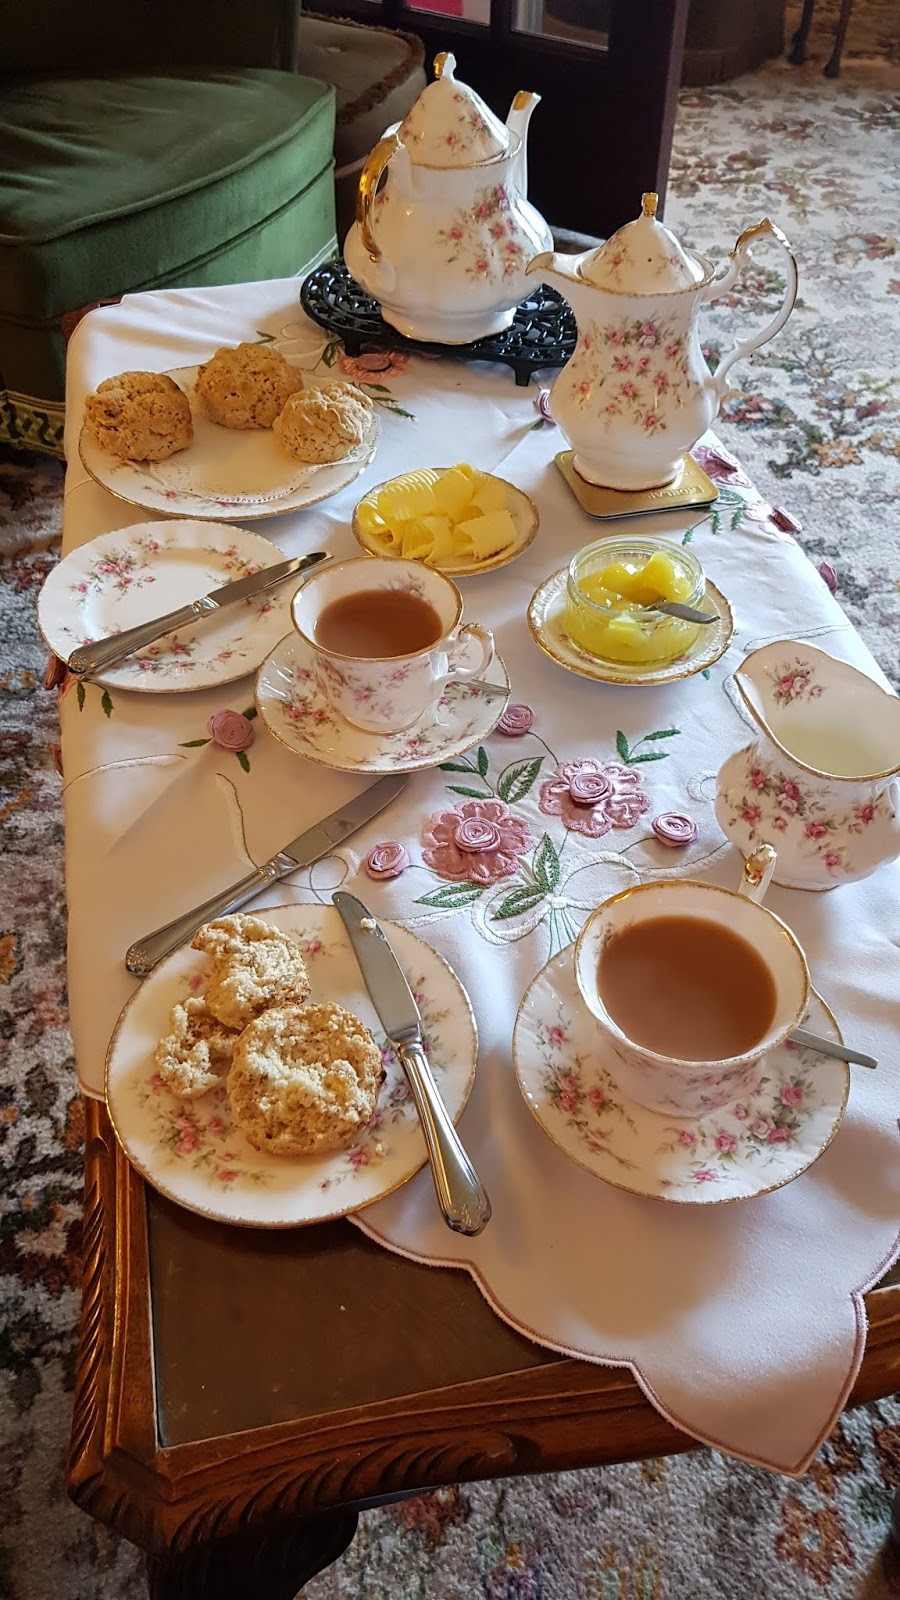 Brookfield House B&B in Shap, Cumbria, presents walkers doing the Coast to Coast walk with delicious warm scones and lemon curd with tea